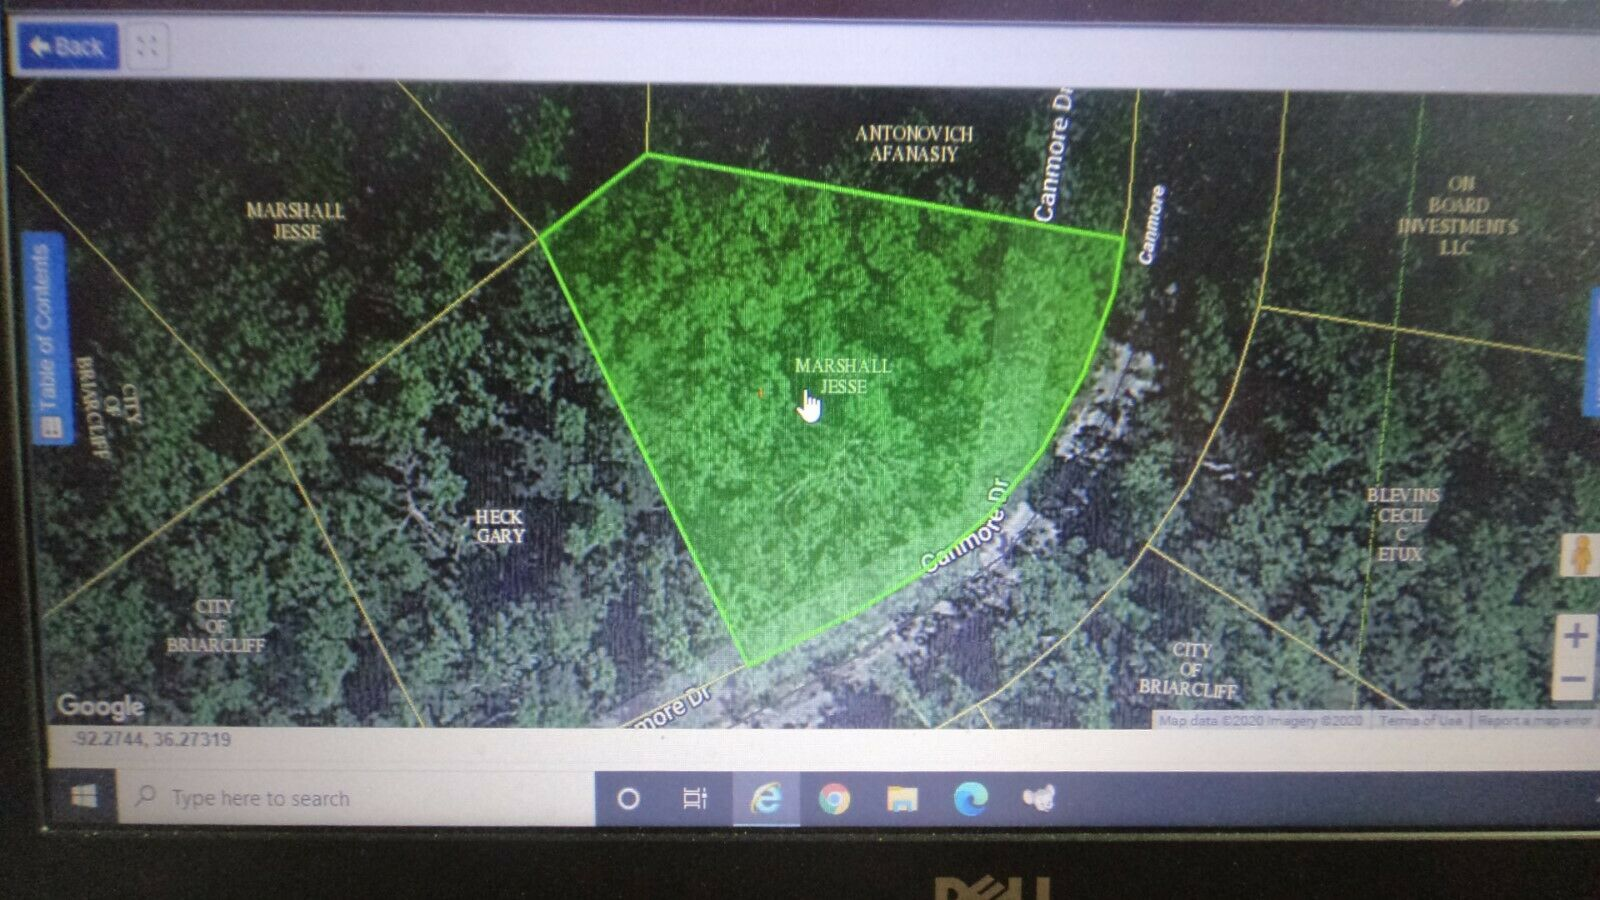 12989 Sq Feet .2982 Acre Briarcliff, AR- HALF Mile To Norfork Lake POWER CLOSE - $76.00